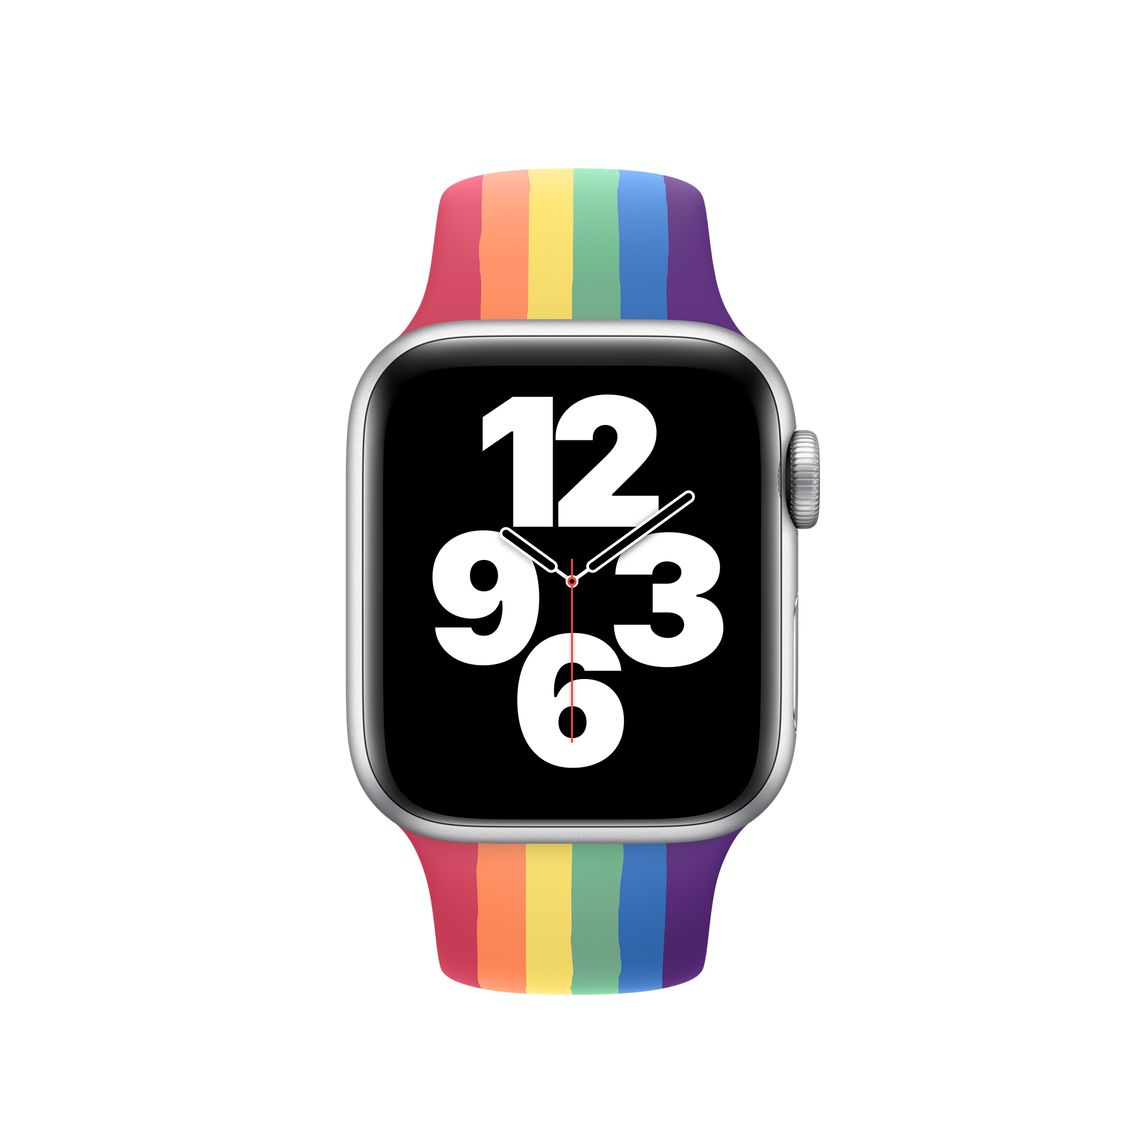 40mm Pride Edition Nike Sport Band